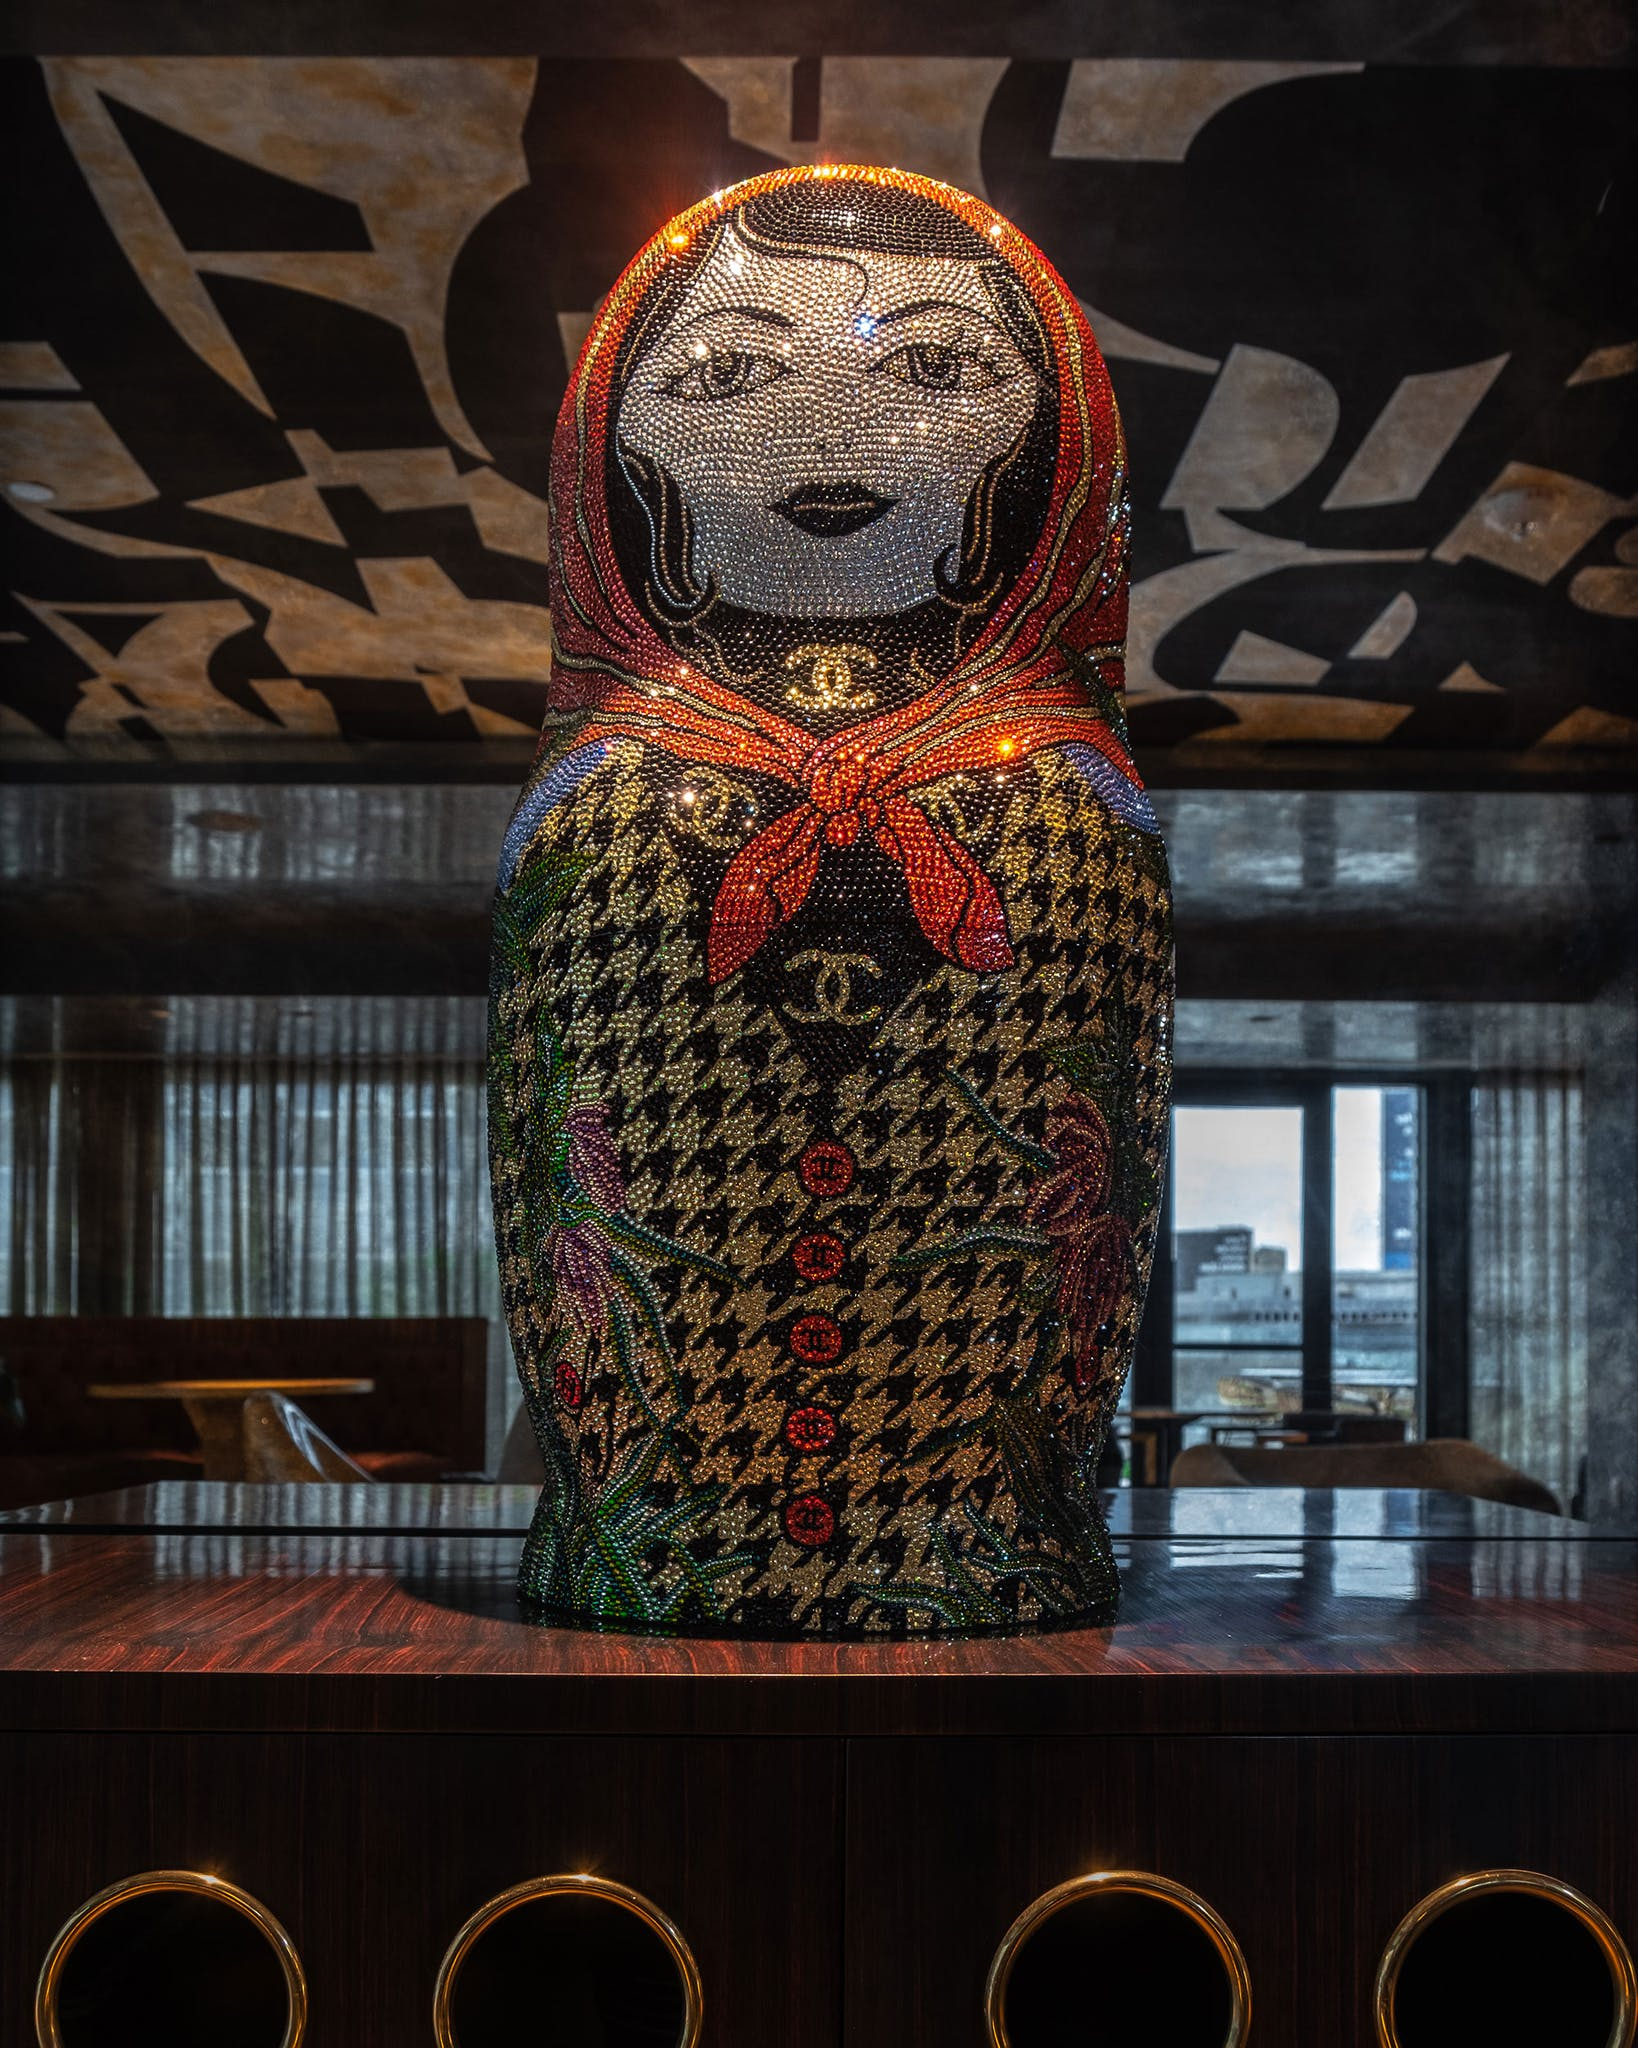 """As is the case throughout the hotel, Catbird features art in many forms. The Chanel motifs on this Swarovski-crystal-covered sculpture by Metis Atash speak to the """"ladies who lunch"""" set, who would also feel at home at the nearby Nine at the National restaurant, which opened at the hotel this week. (There, Caroline installed shimmering banquettes and tweed-backed chairs that nod to Gabrielle """"Coco"""" Chanel herself.)"""